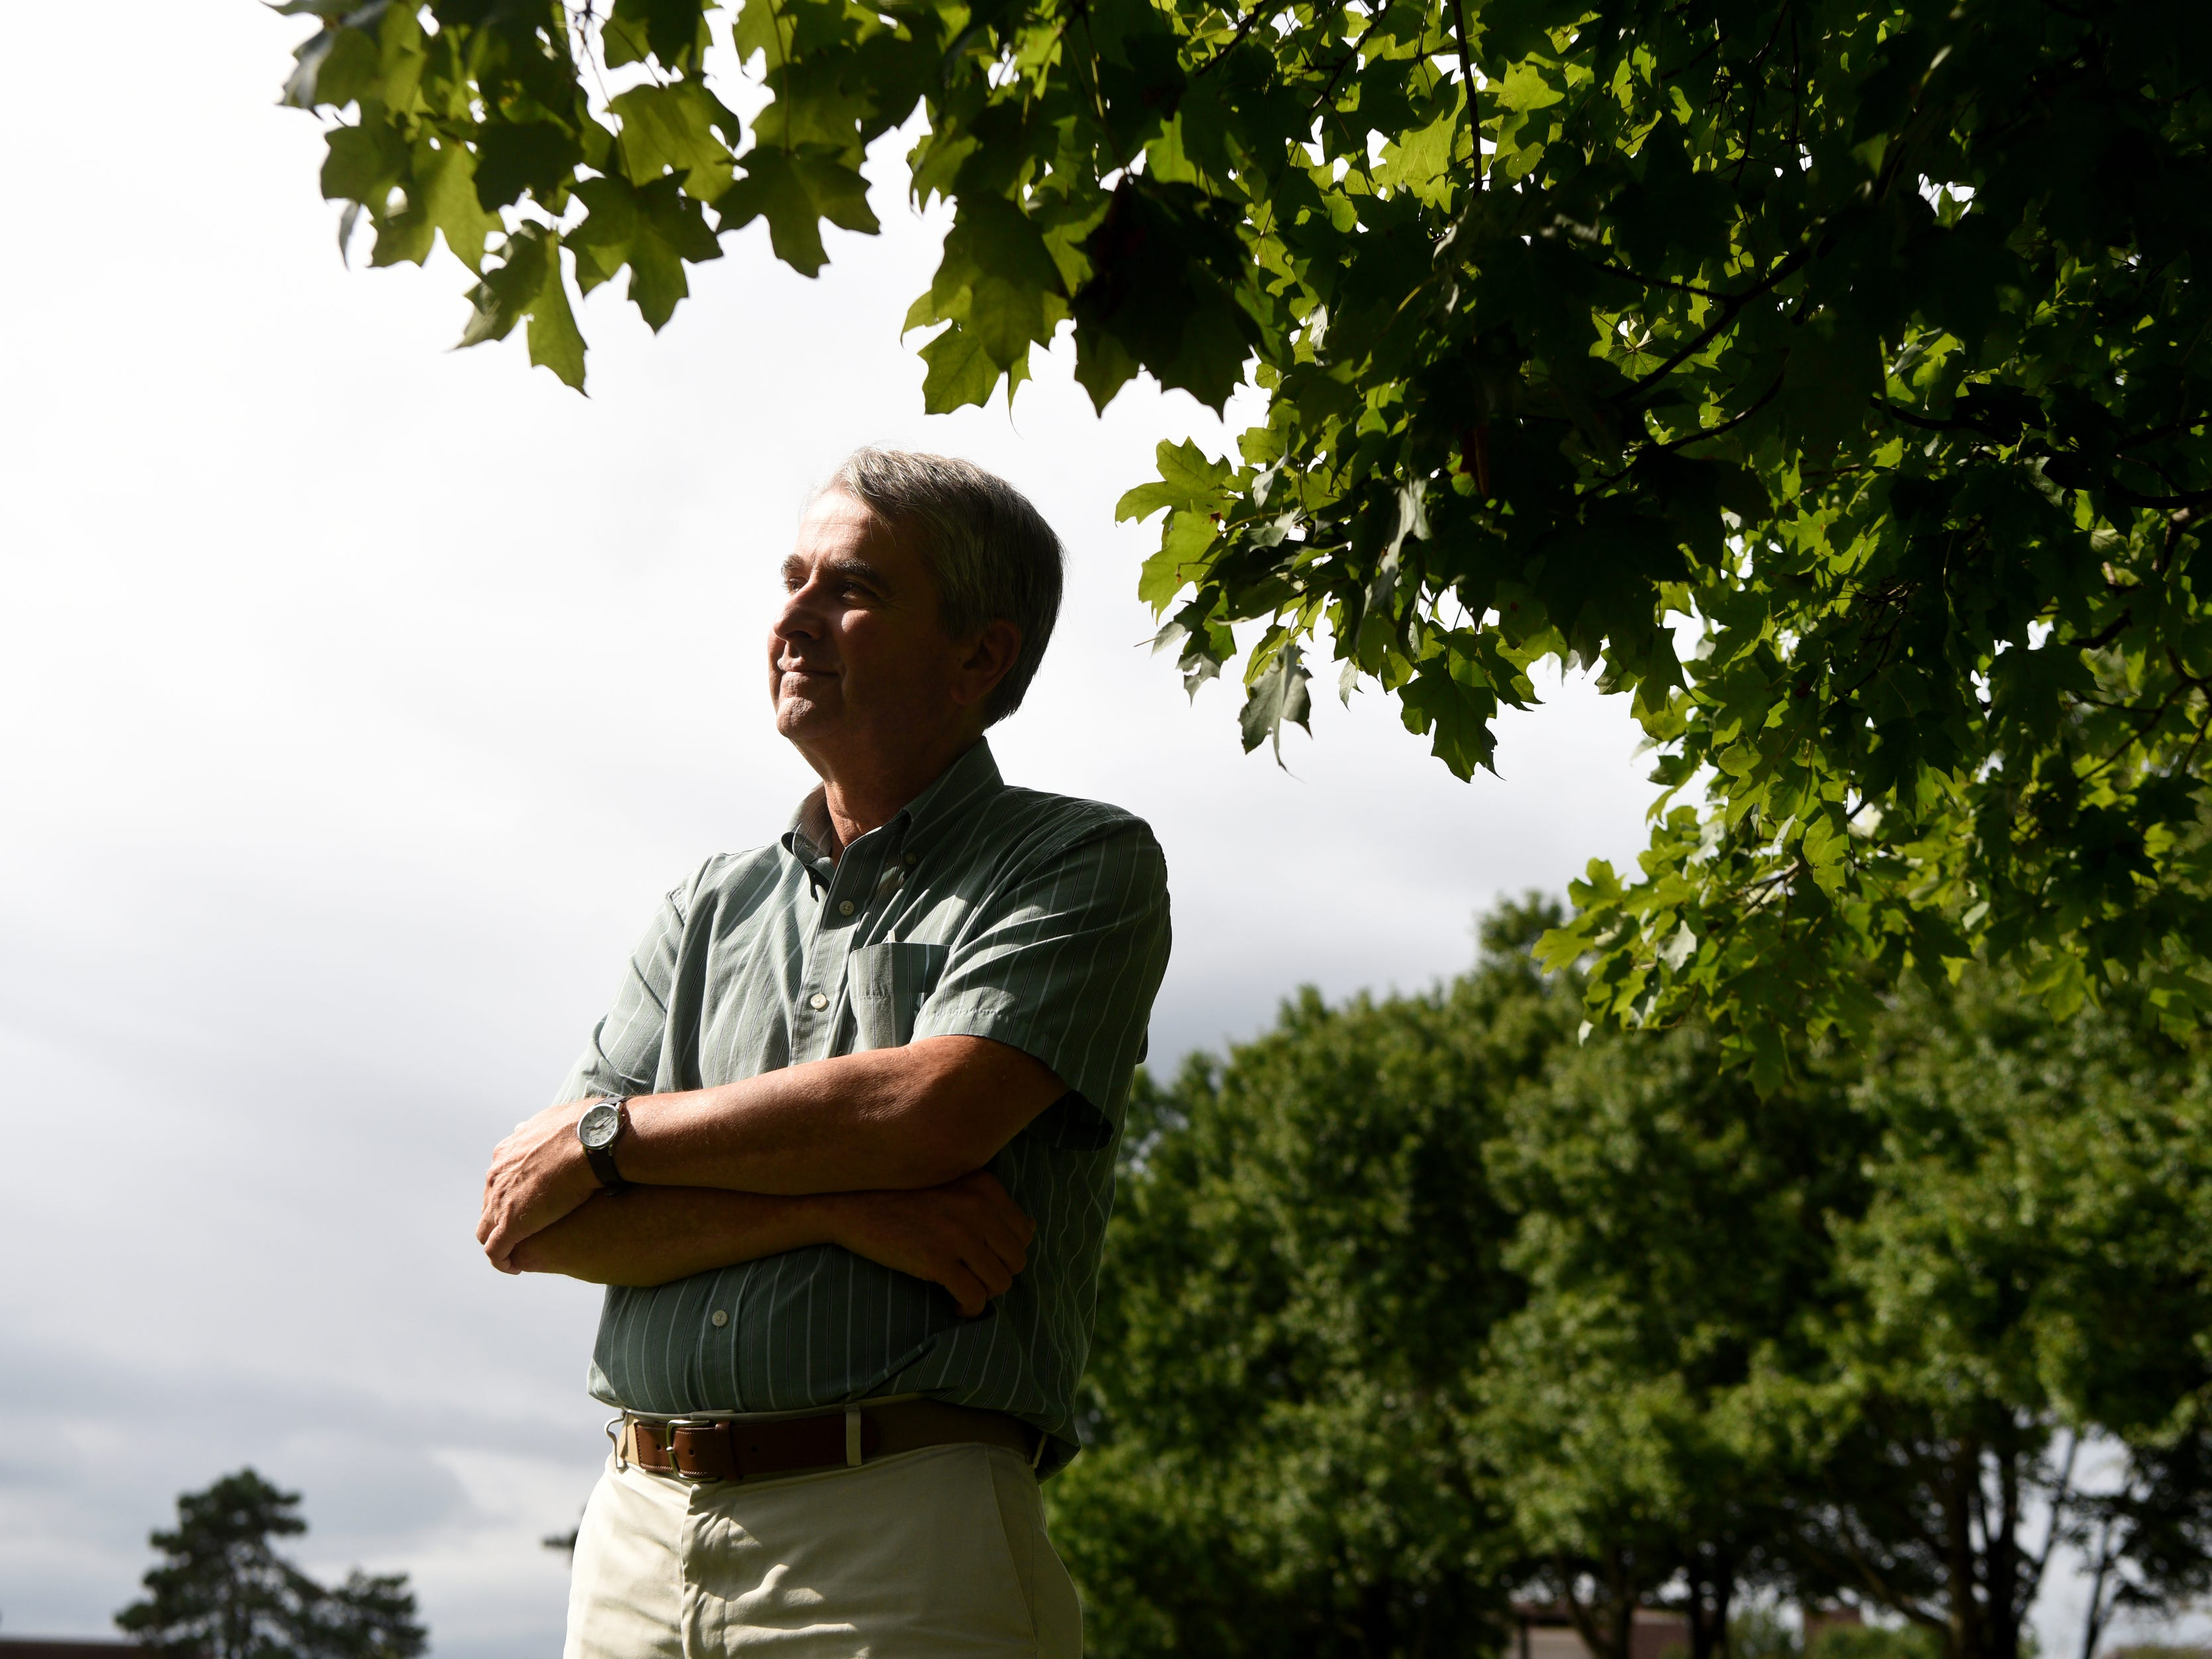 NJ state climatologist Dr. David Robinson has been a professor of geography at Rutgers University for thirty years. Robinson poses for a portrait on Thursday, September 20, 2018